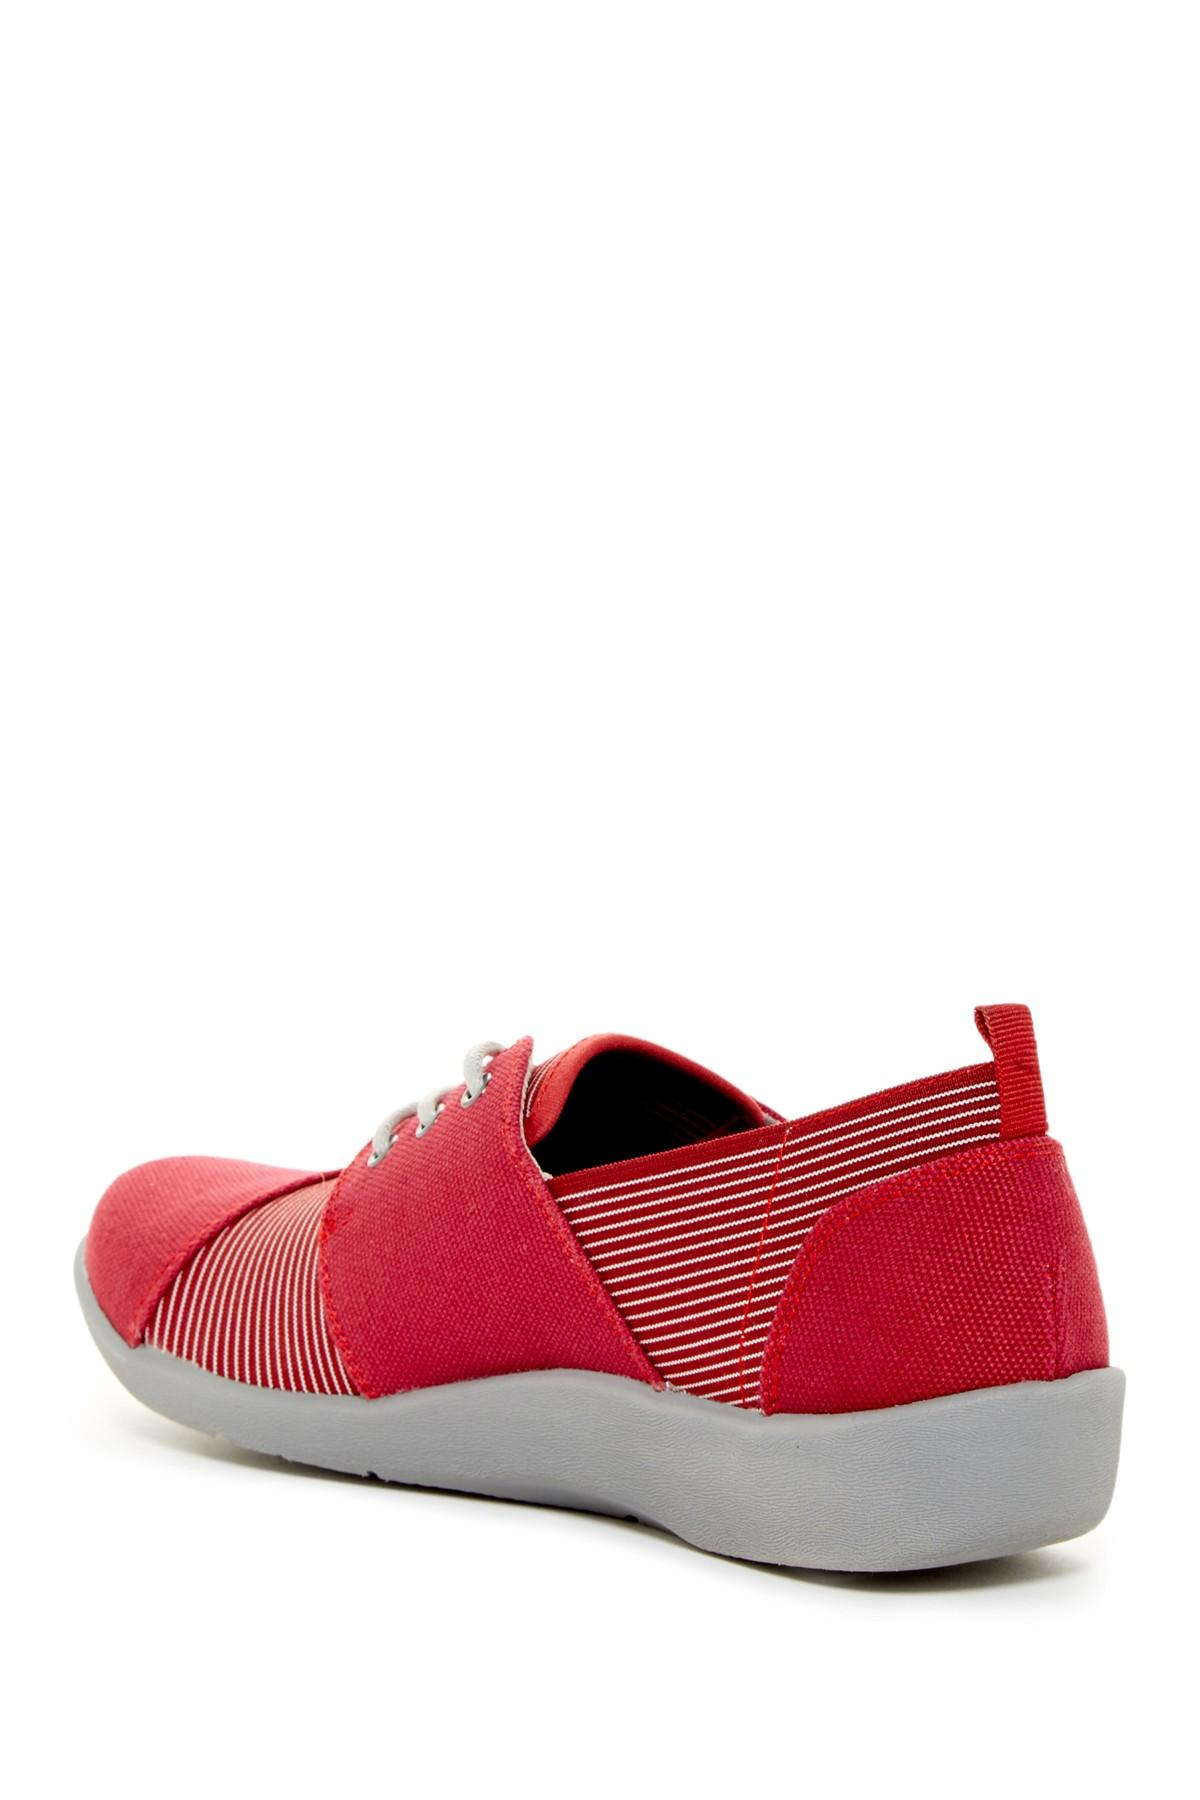 Sillian Red Shoes Clarks